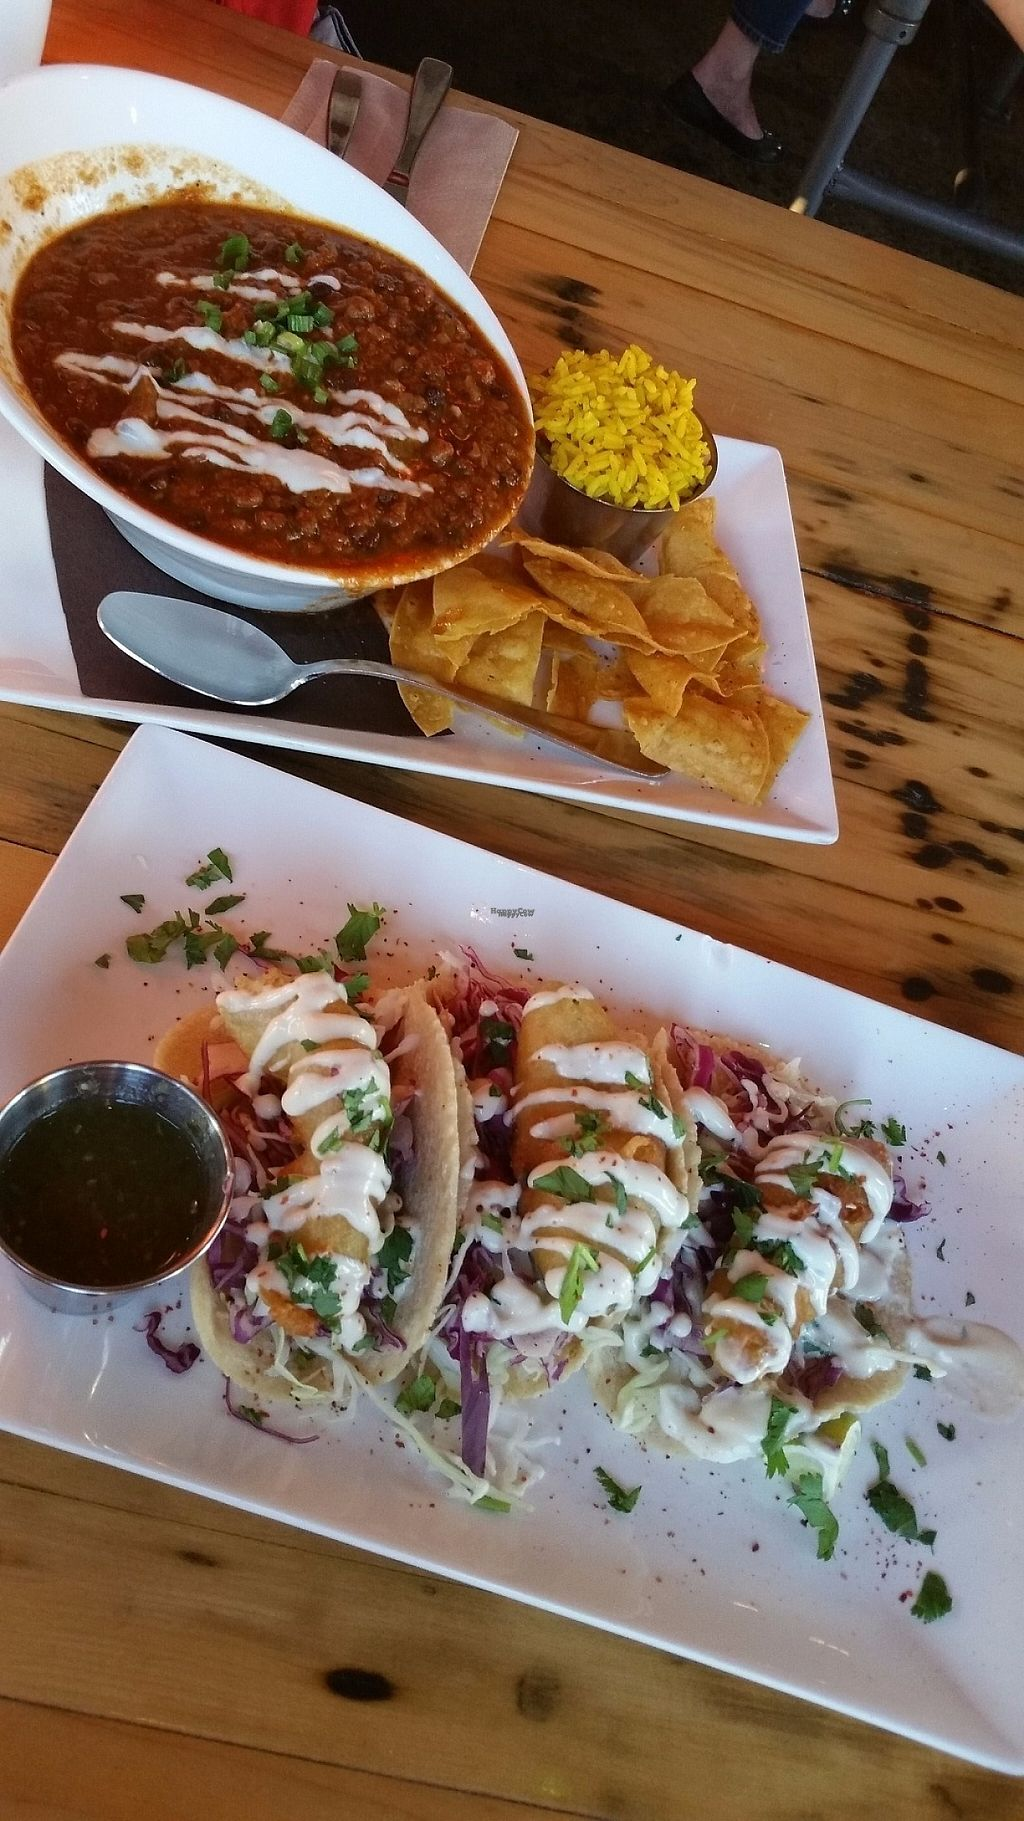 """Photo of Tucos Taco Lounge  by <a href=""""/members/profile/LPT"""">LPT</a> <br/>Chili & Phish Taco <br/> November 11, 2016  - <a href='/contact/abuse/image/53957/188738'>Report</a>"""